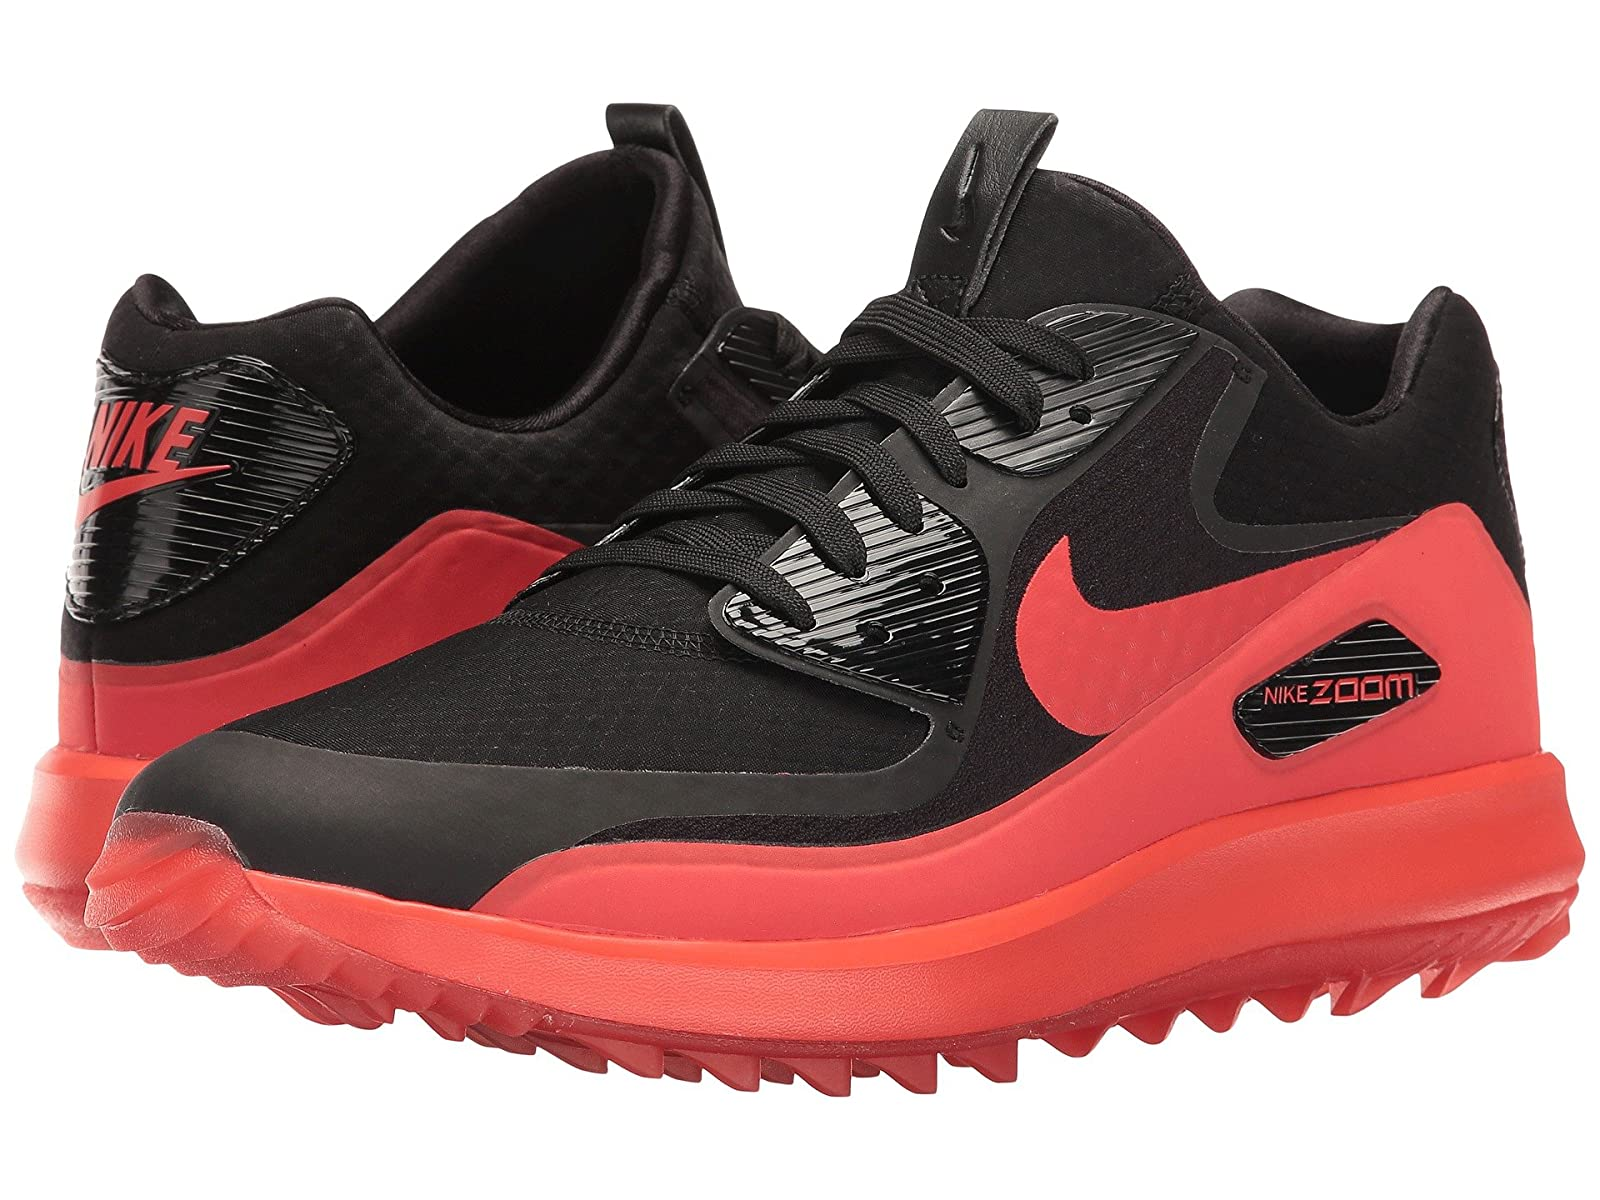 Nike Golf Air Zoom 90 ITCheap and distinctive eye-catching shoes